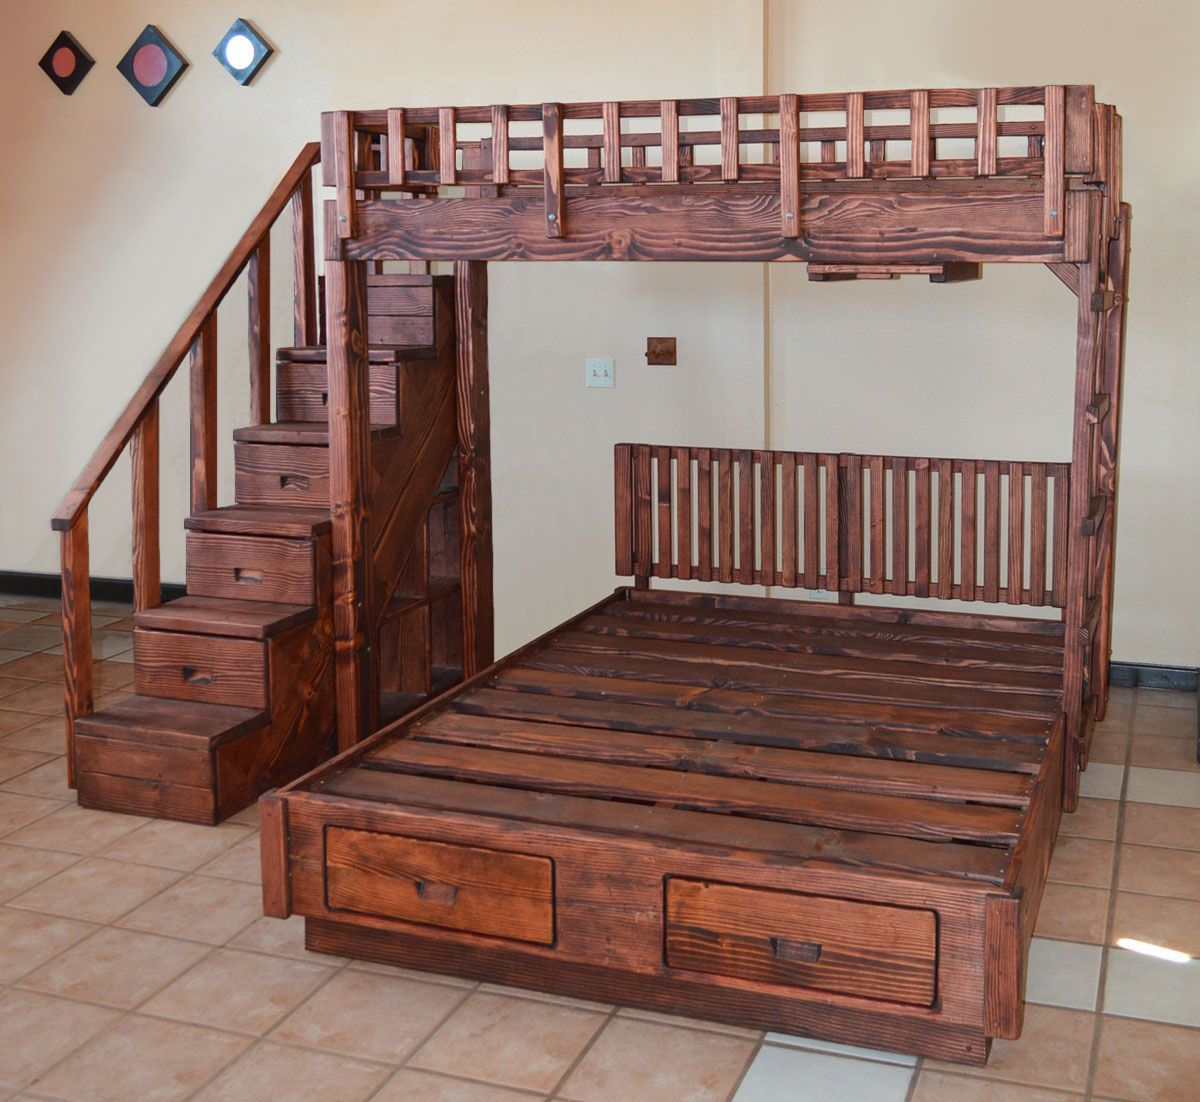 50 Double Bunk Beds Top And Bottom Interior Design Bedroom Ideas